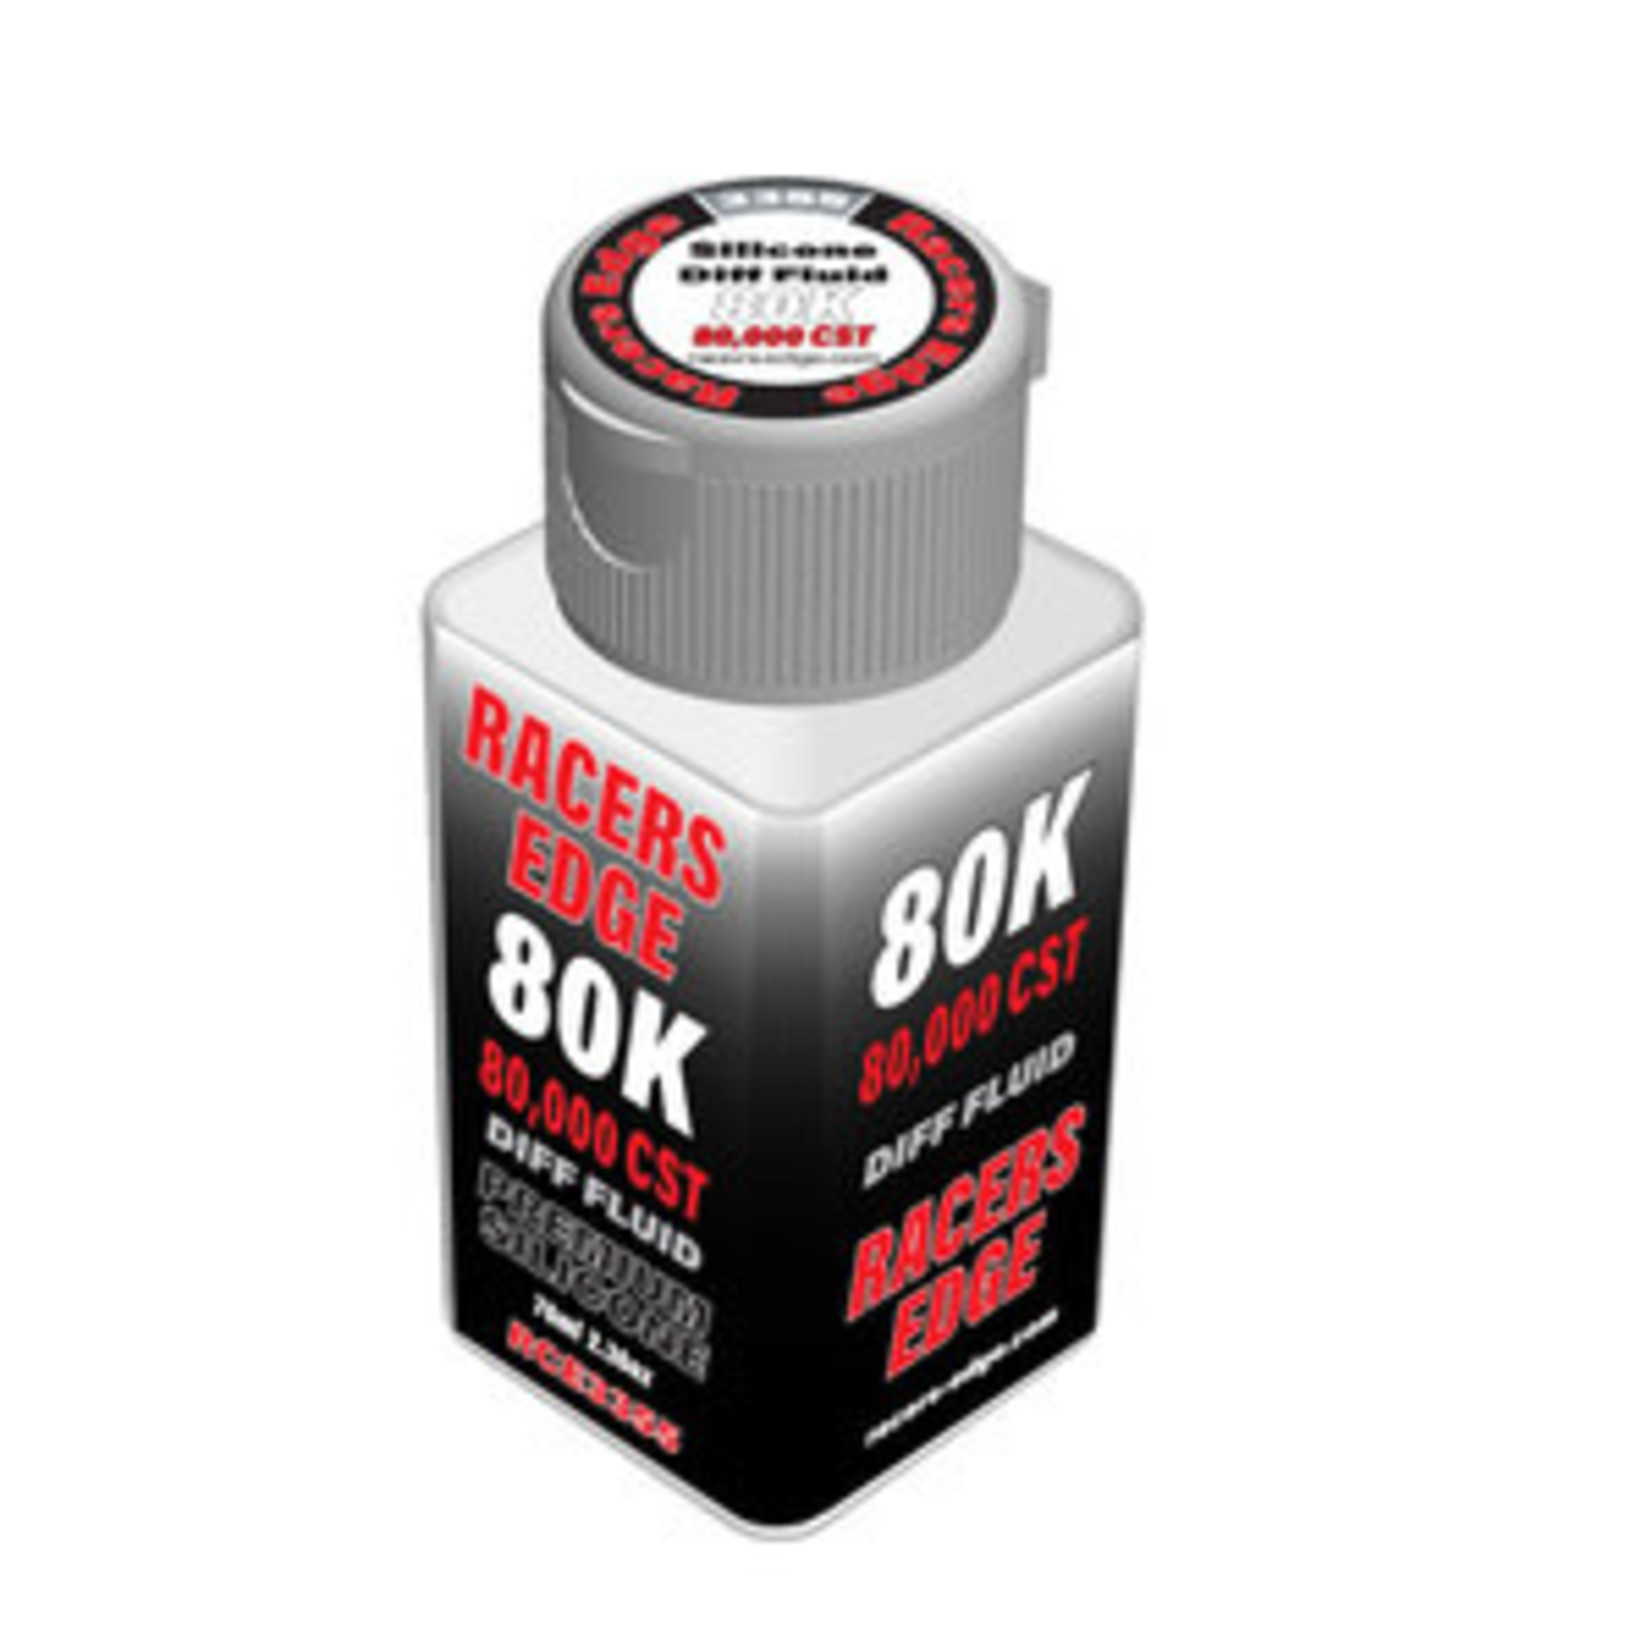 Racers Edge 80,000cSt 70ml 2.36oz Pure Silicone Diff Fluid